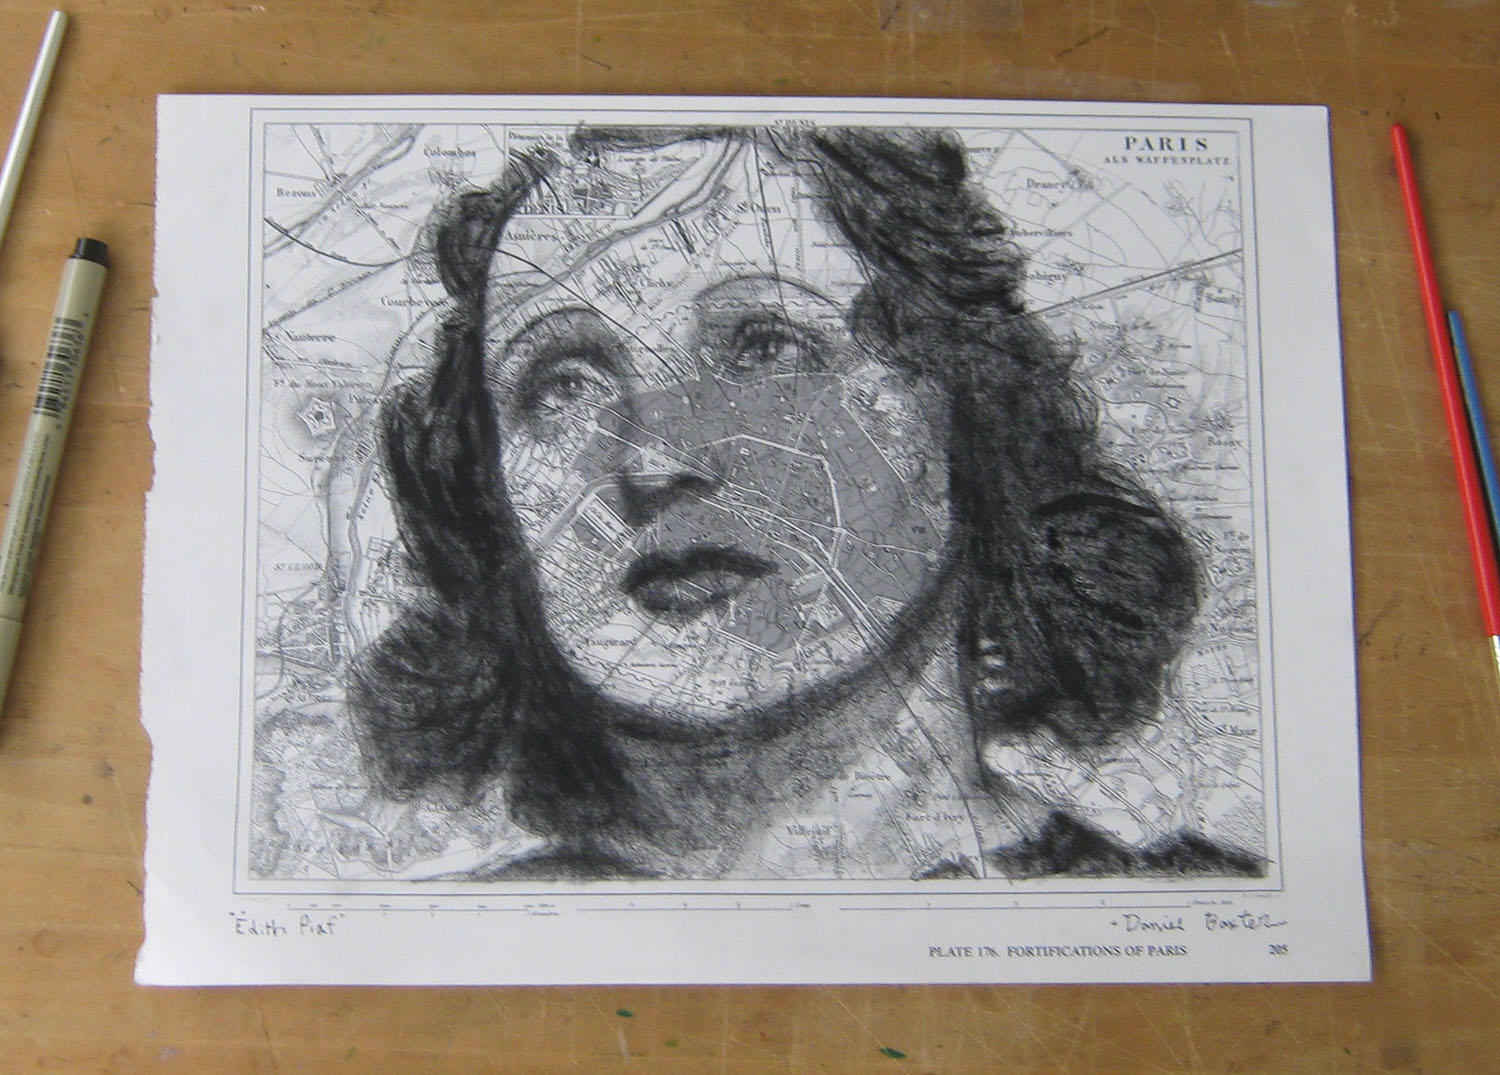 Copyright Daniel Baxter Edith Piaf portrait photop.jpg